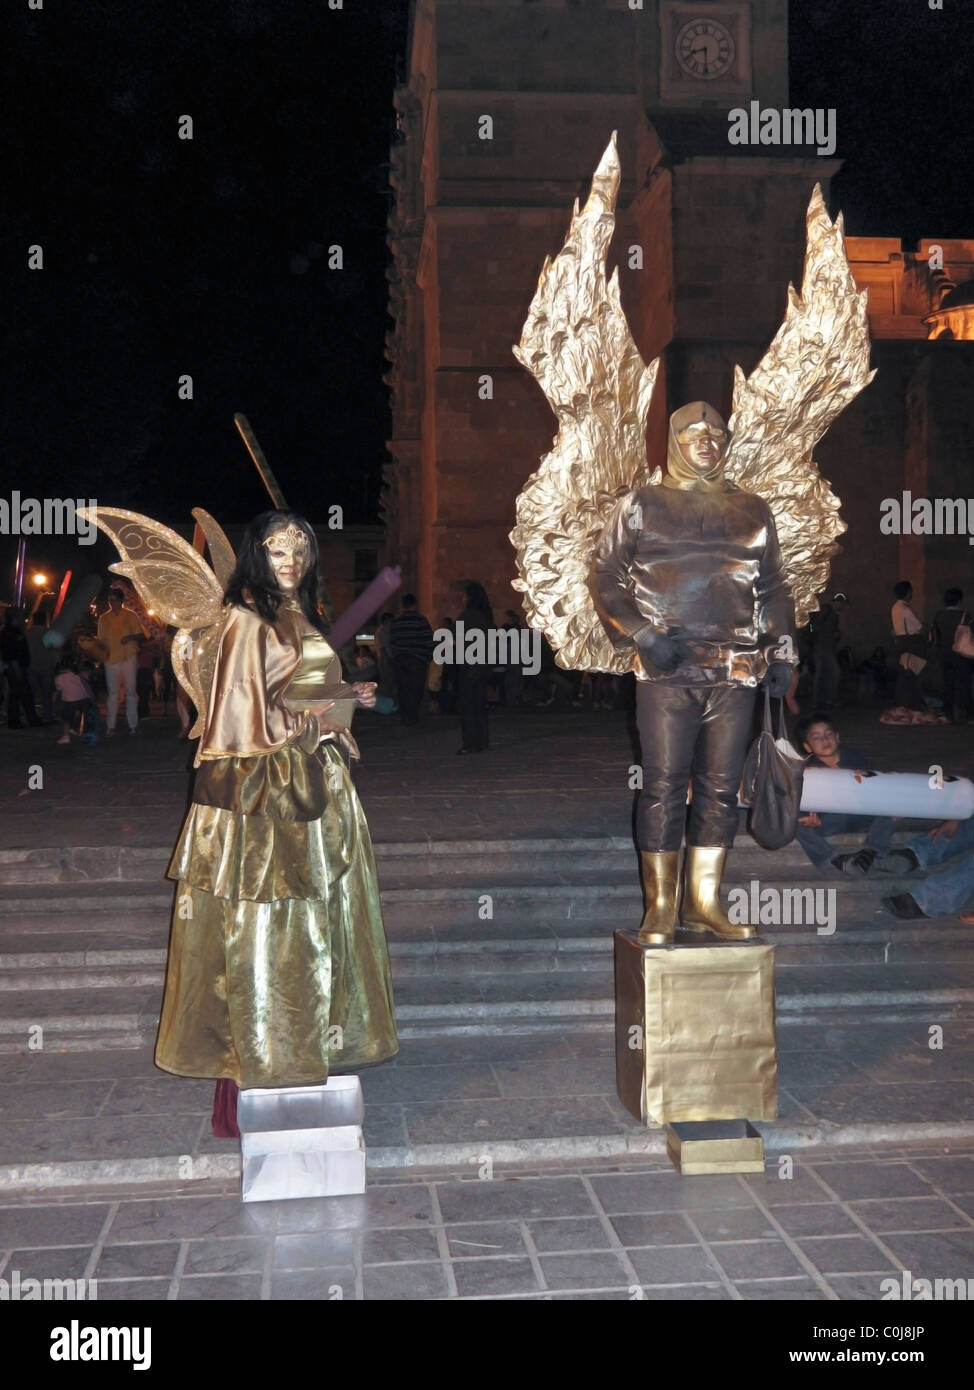 man & woman beautiful shimmering golden angel mime fortune  tellers holding bag & box of destinies at night - Stock Image